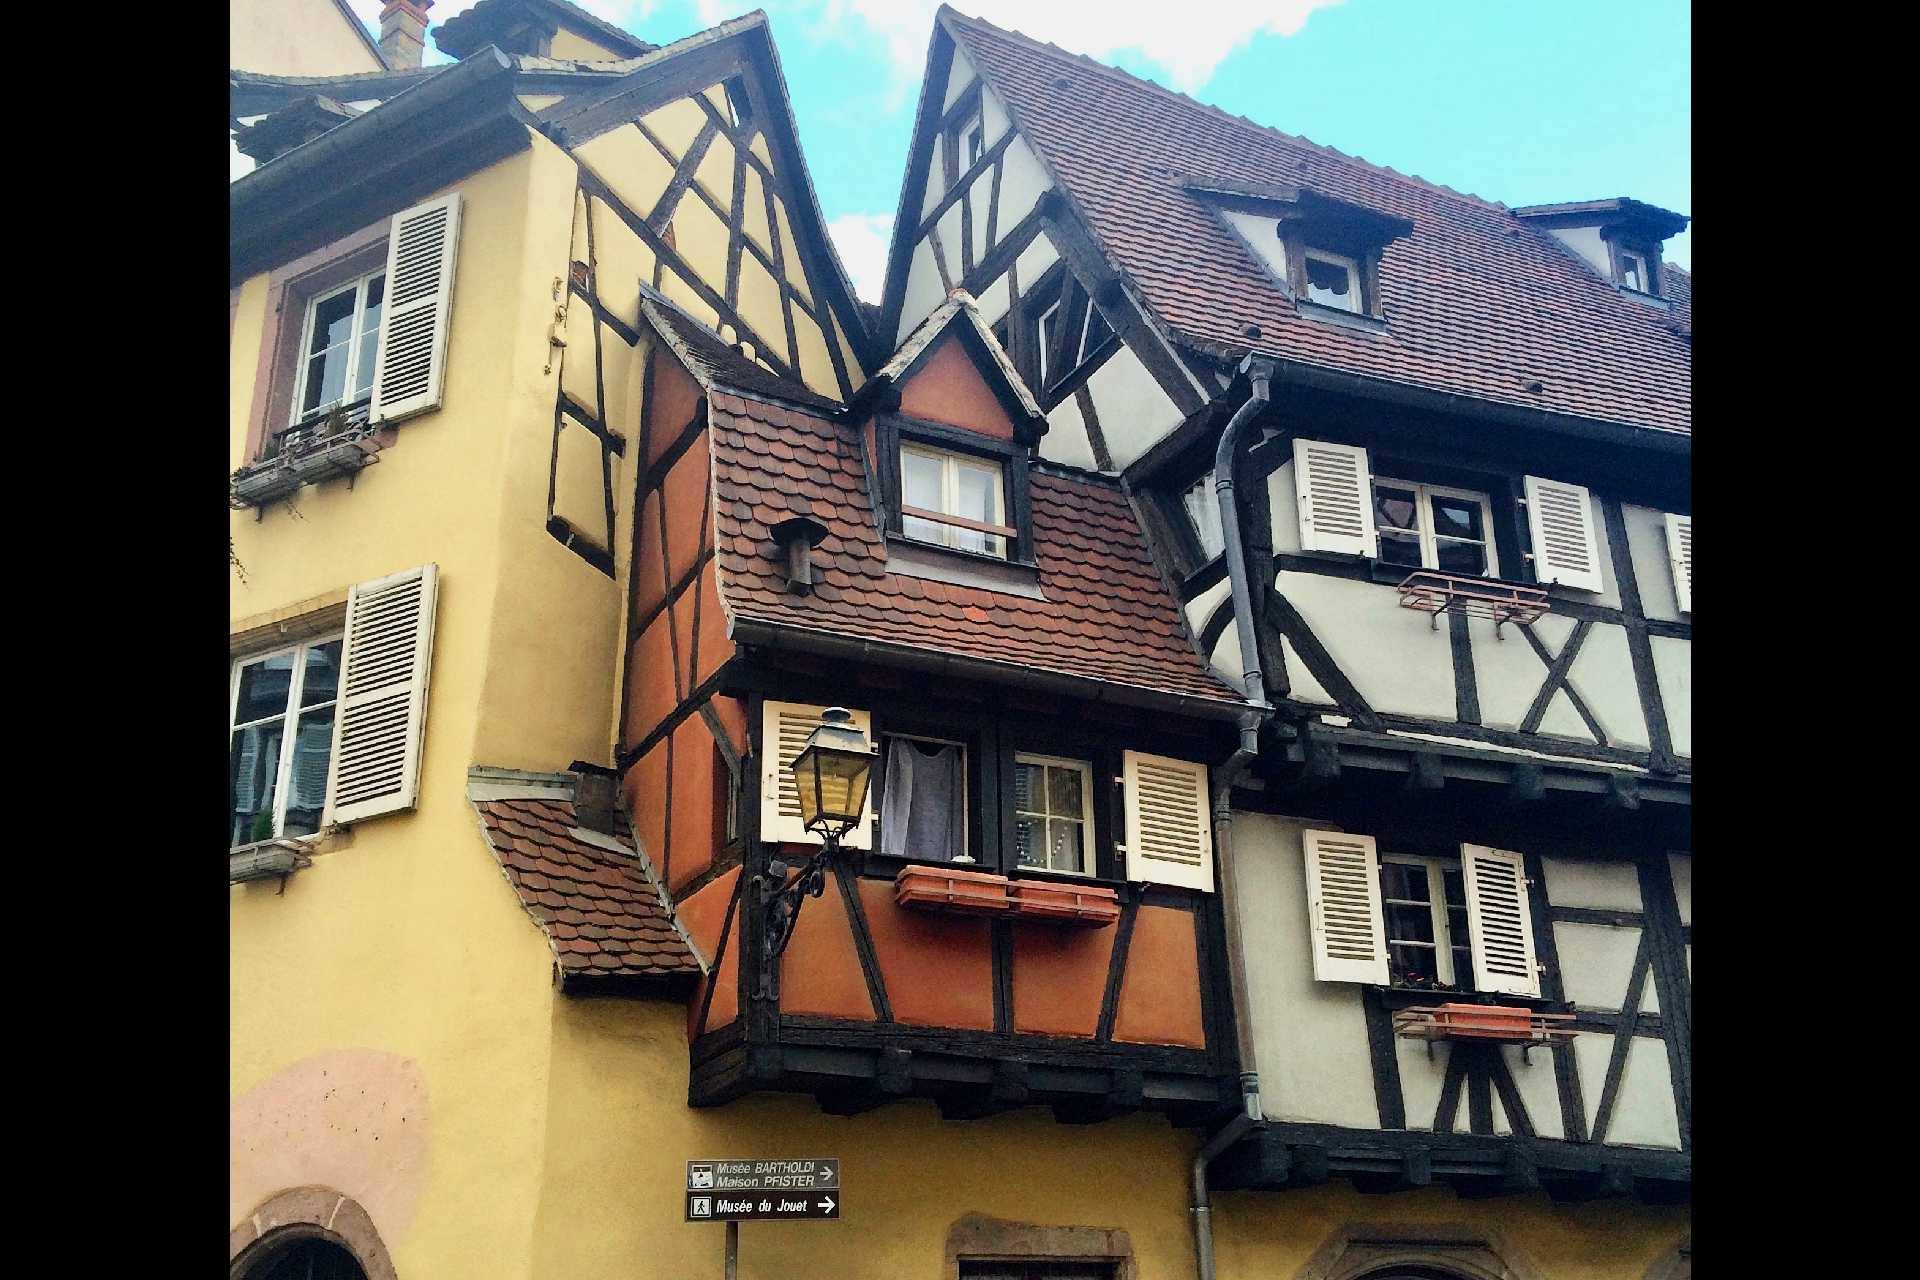 Smallest house In Colmar(red-orange house) - measuring 25 square metres